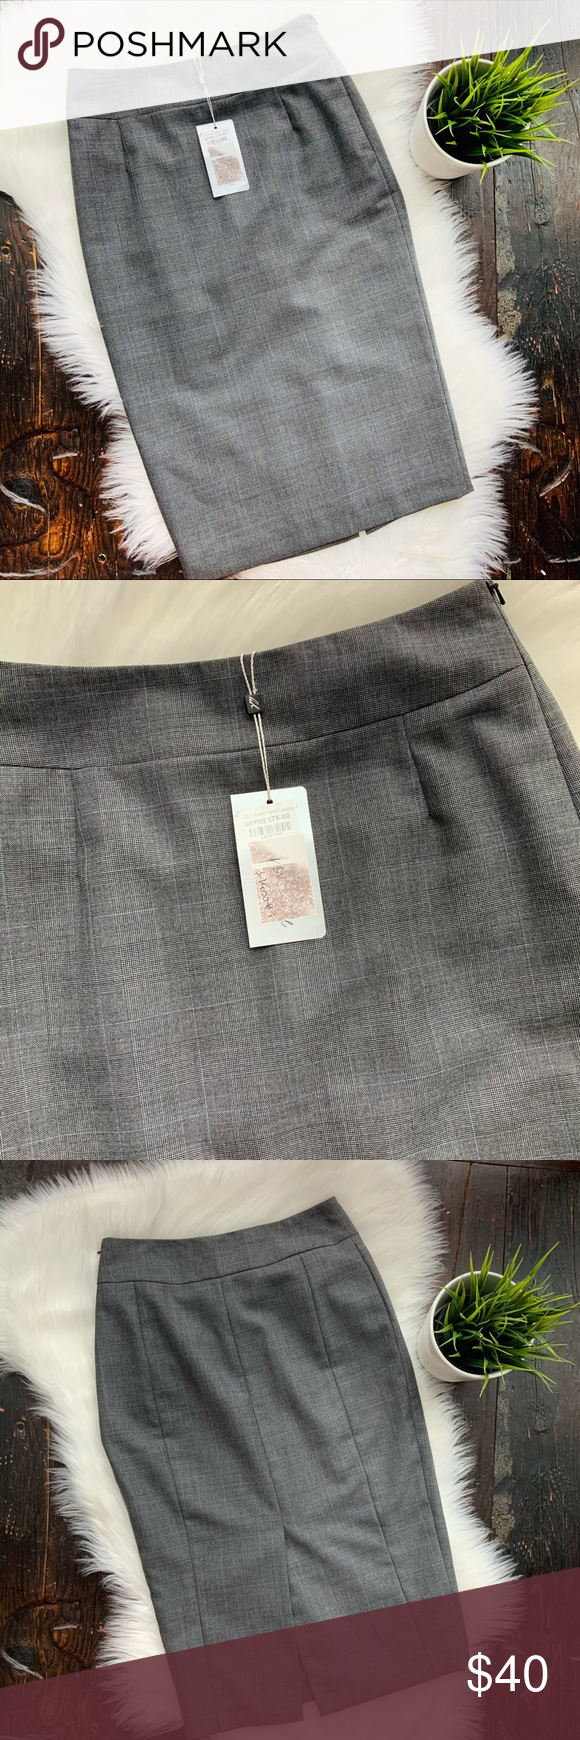 Austin Reed Gray Wool Pencil Skirt 6 New Nwt In 2020 Wool Pencil Skirt Pencil Skirt Austin Reed